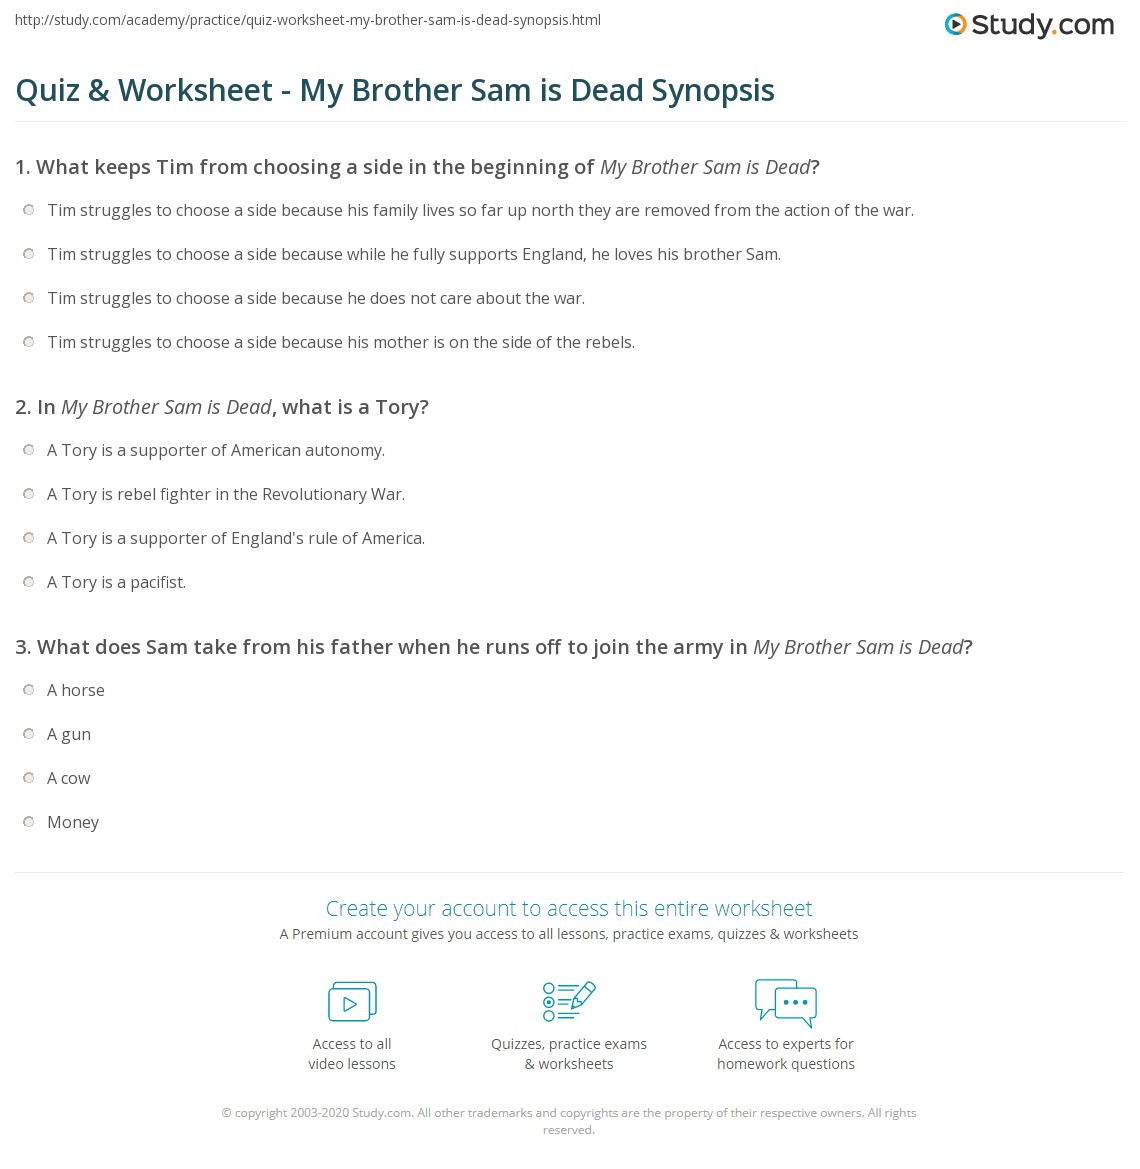 my brother sam is dead worksheets delibertad quiz worksheet my brother sam is dead synopsis study com